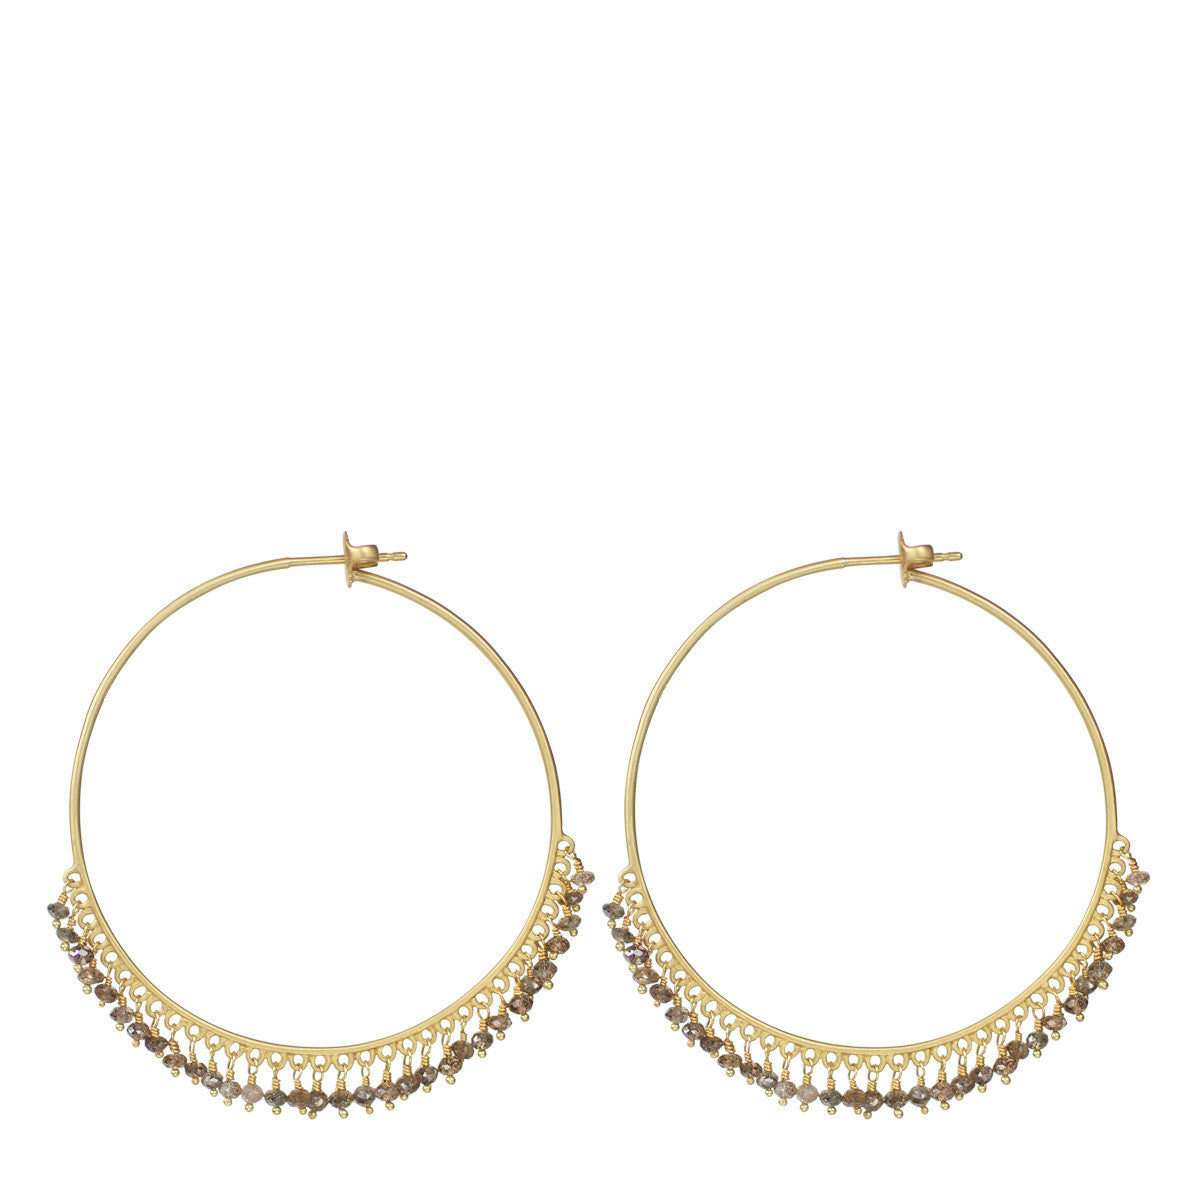 18k Gold Large Brown Diamond Endless Hoop Earrings